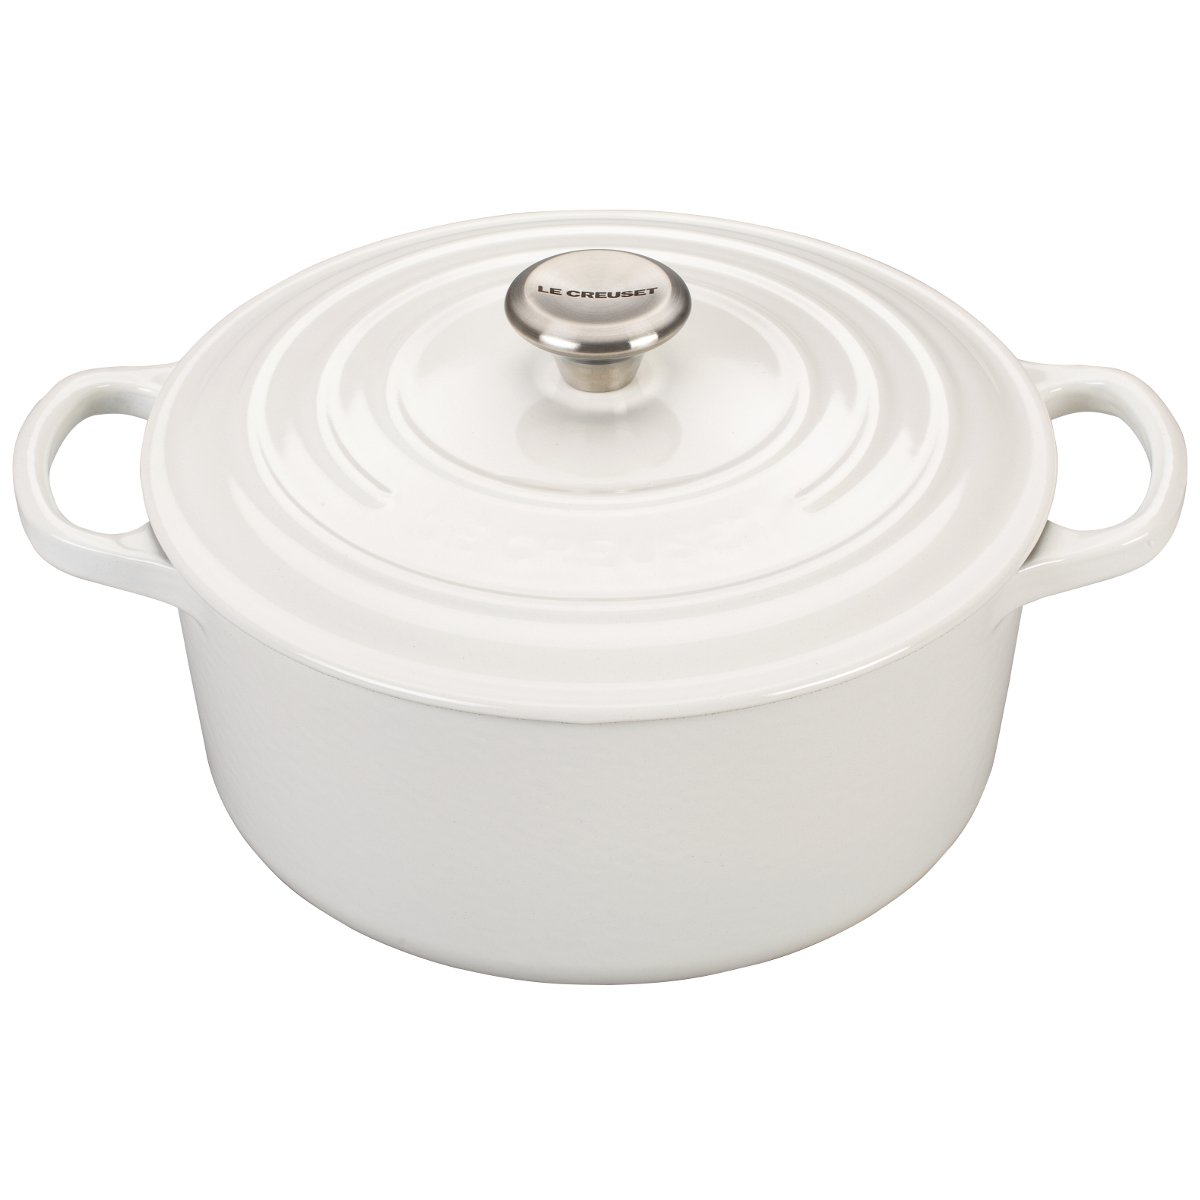 Le Creuset LS2501-2216SS Signature Enameled Cast Iron Round French Oven, 3 1/2 quart, White